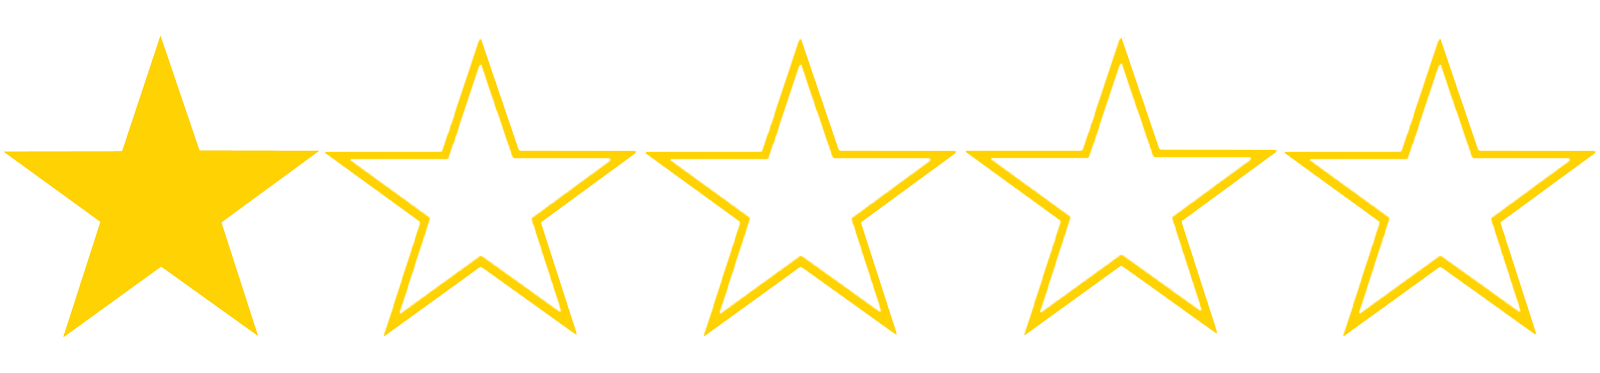 1-star.png